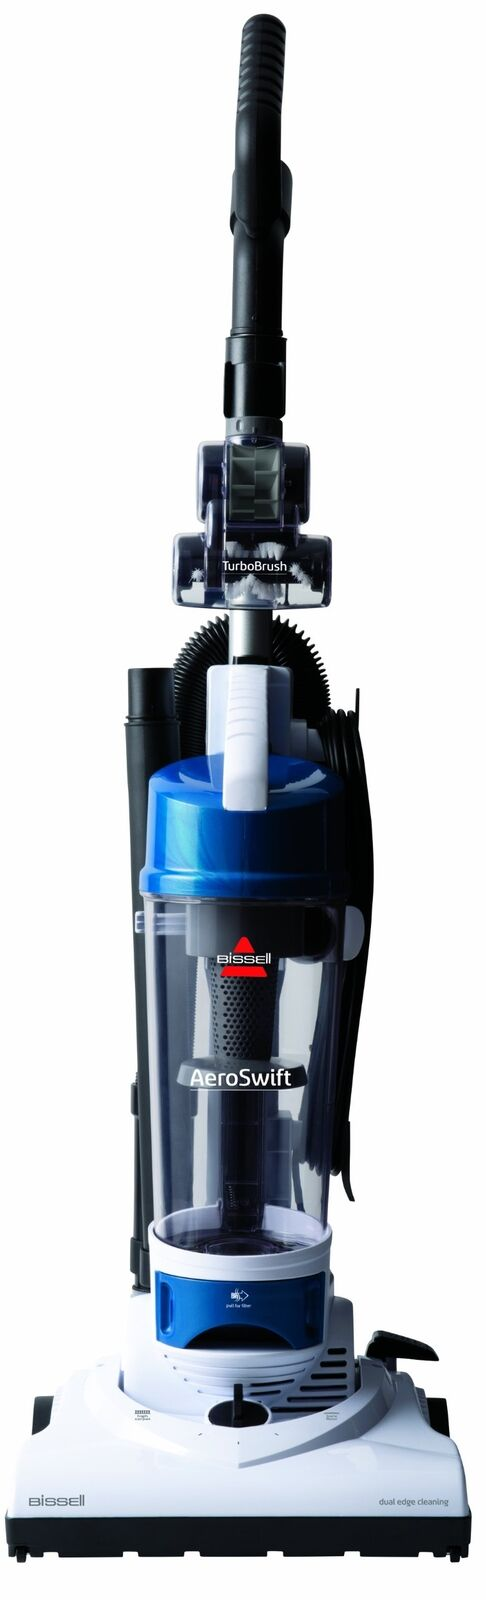 Bissell Aeroswift Compact Bagless Upright Vacuum, 1009 - Corded